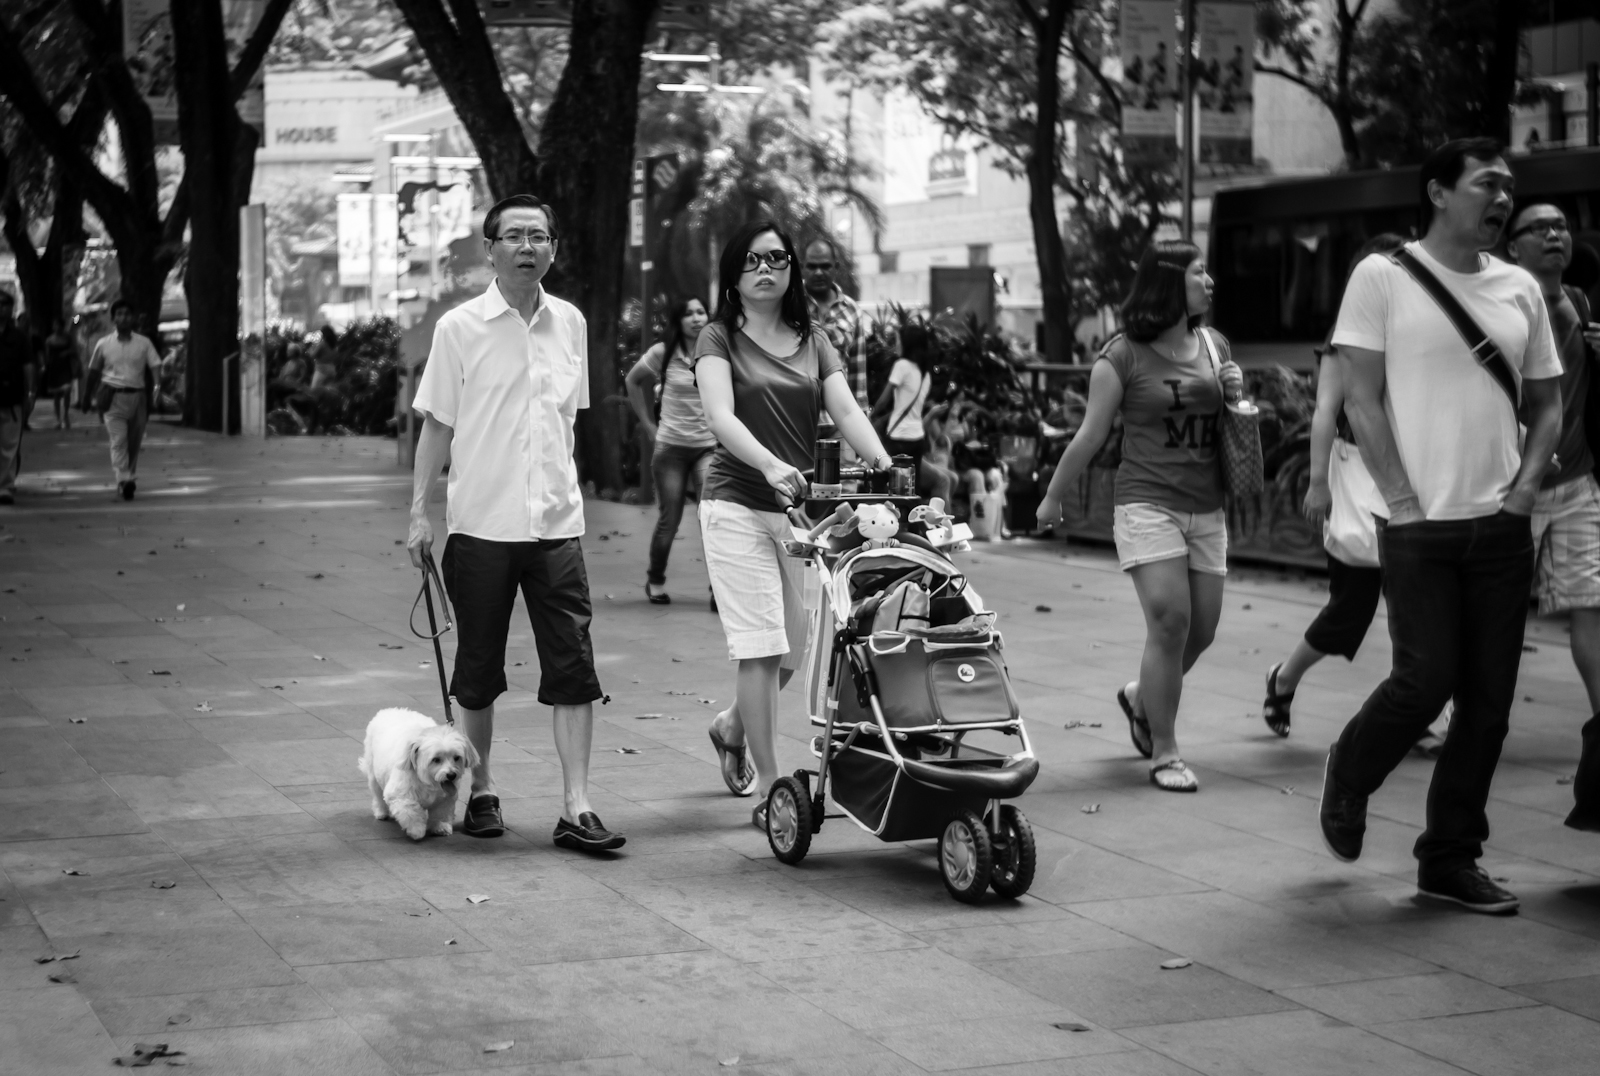 Street photography - Couple pushing a pram for their pet dog